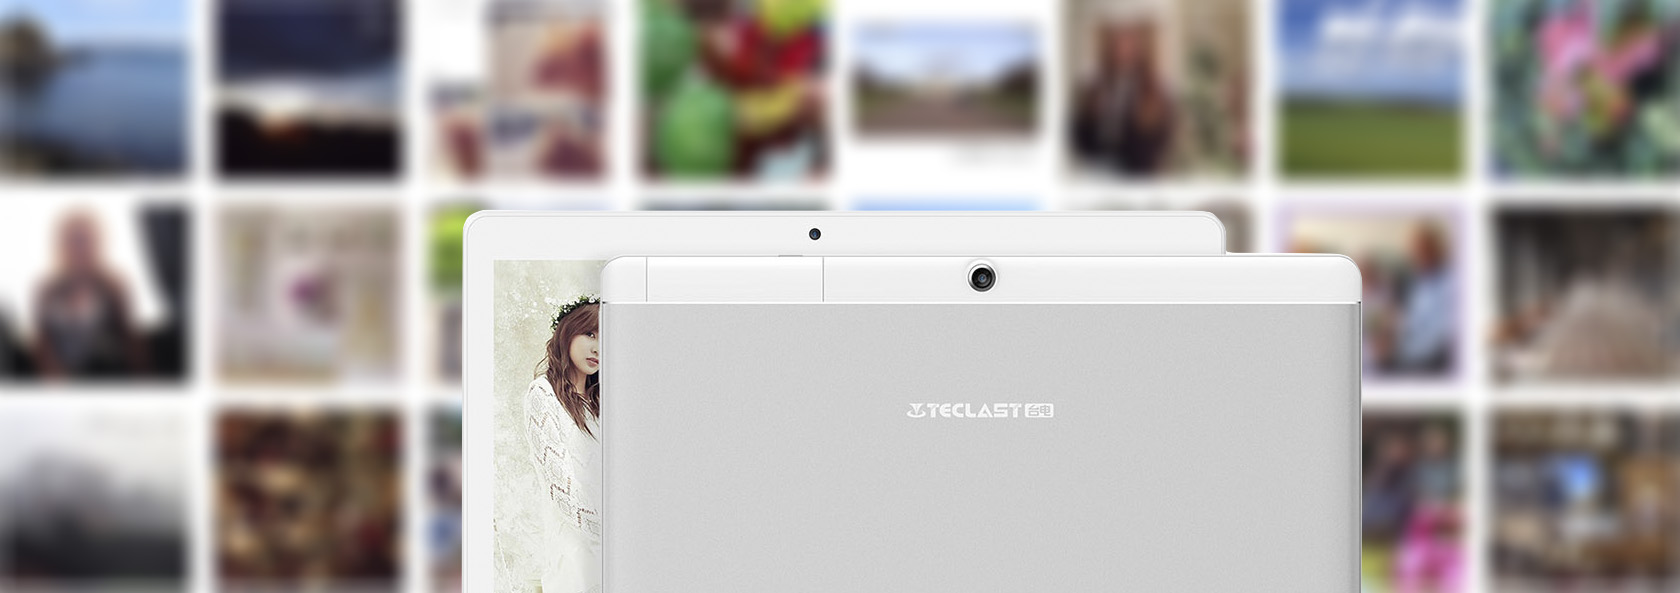 "Teclast X10 Quad Core 10.1"" 16GB (TX10)"